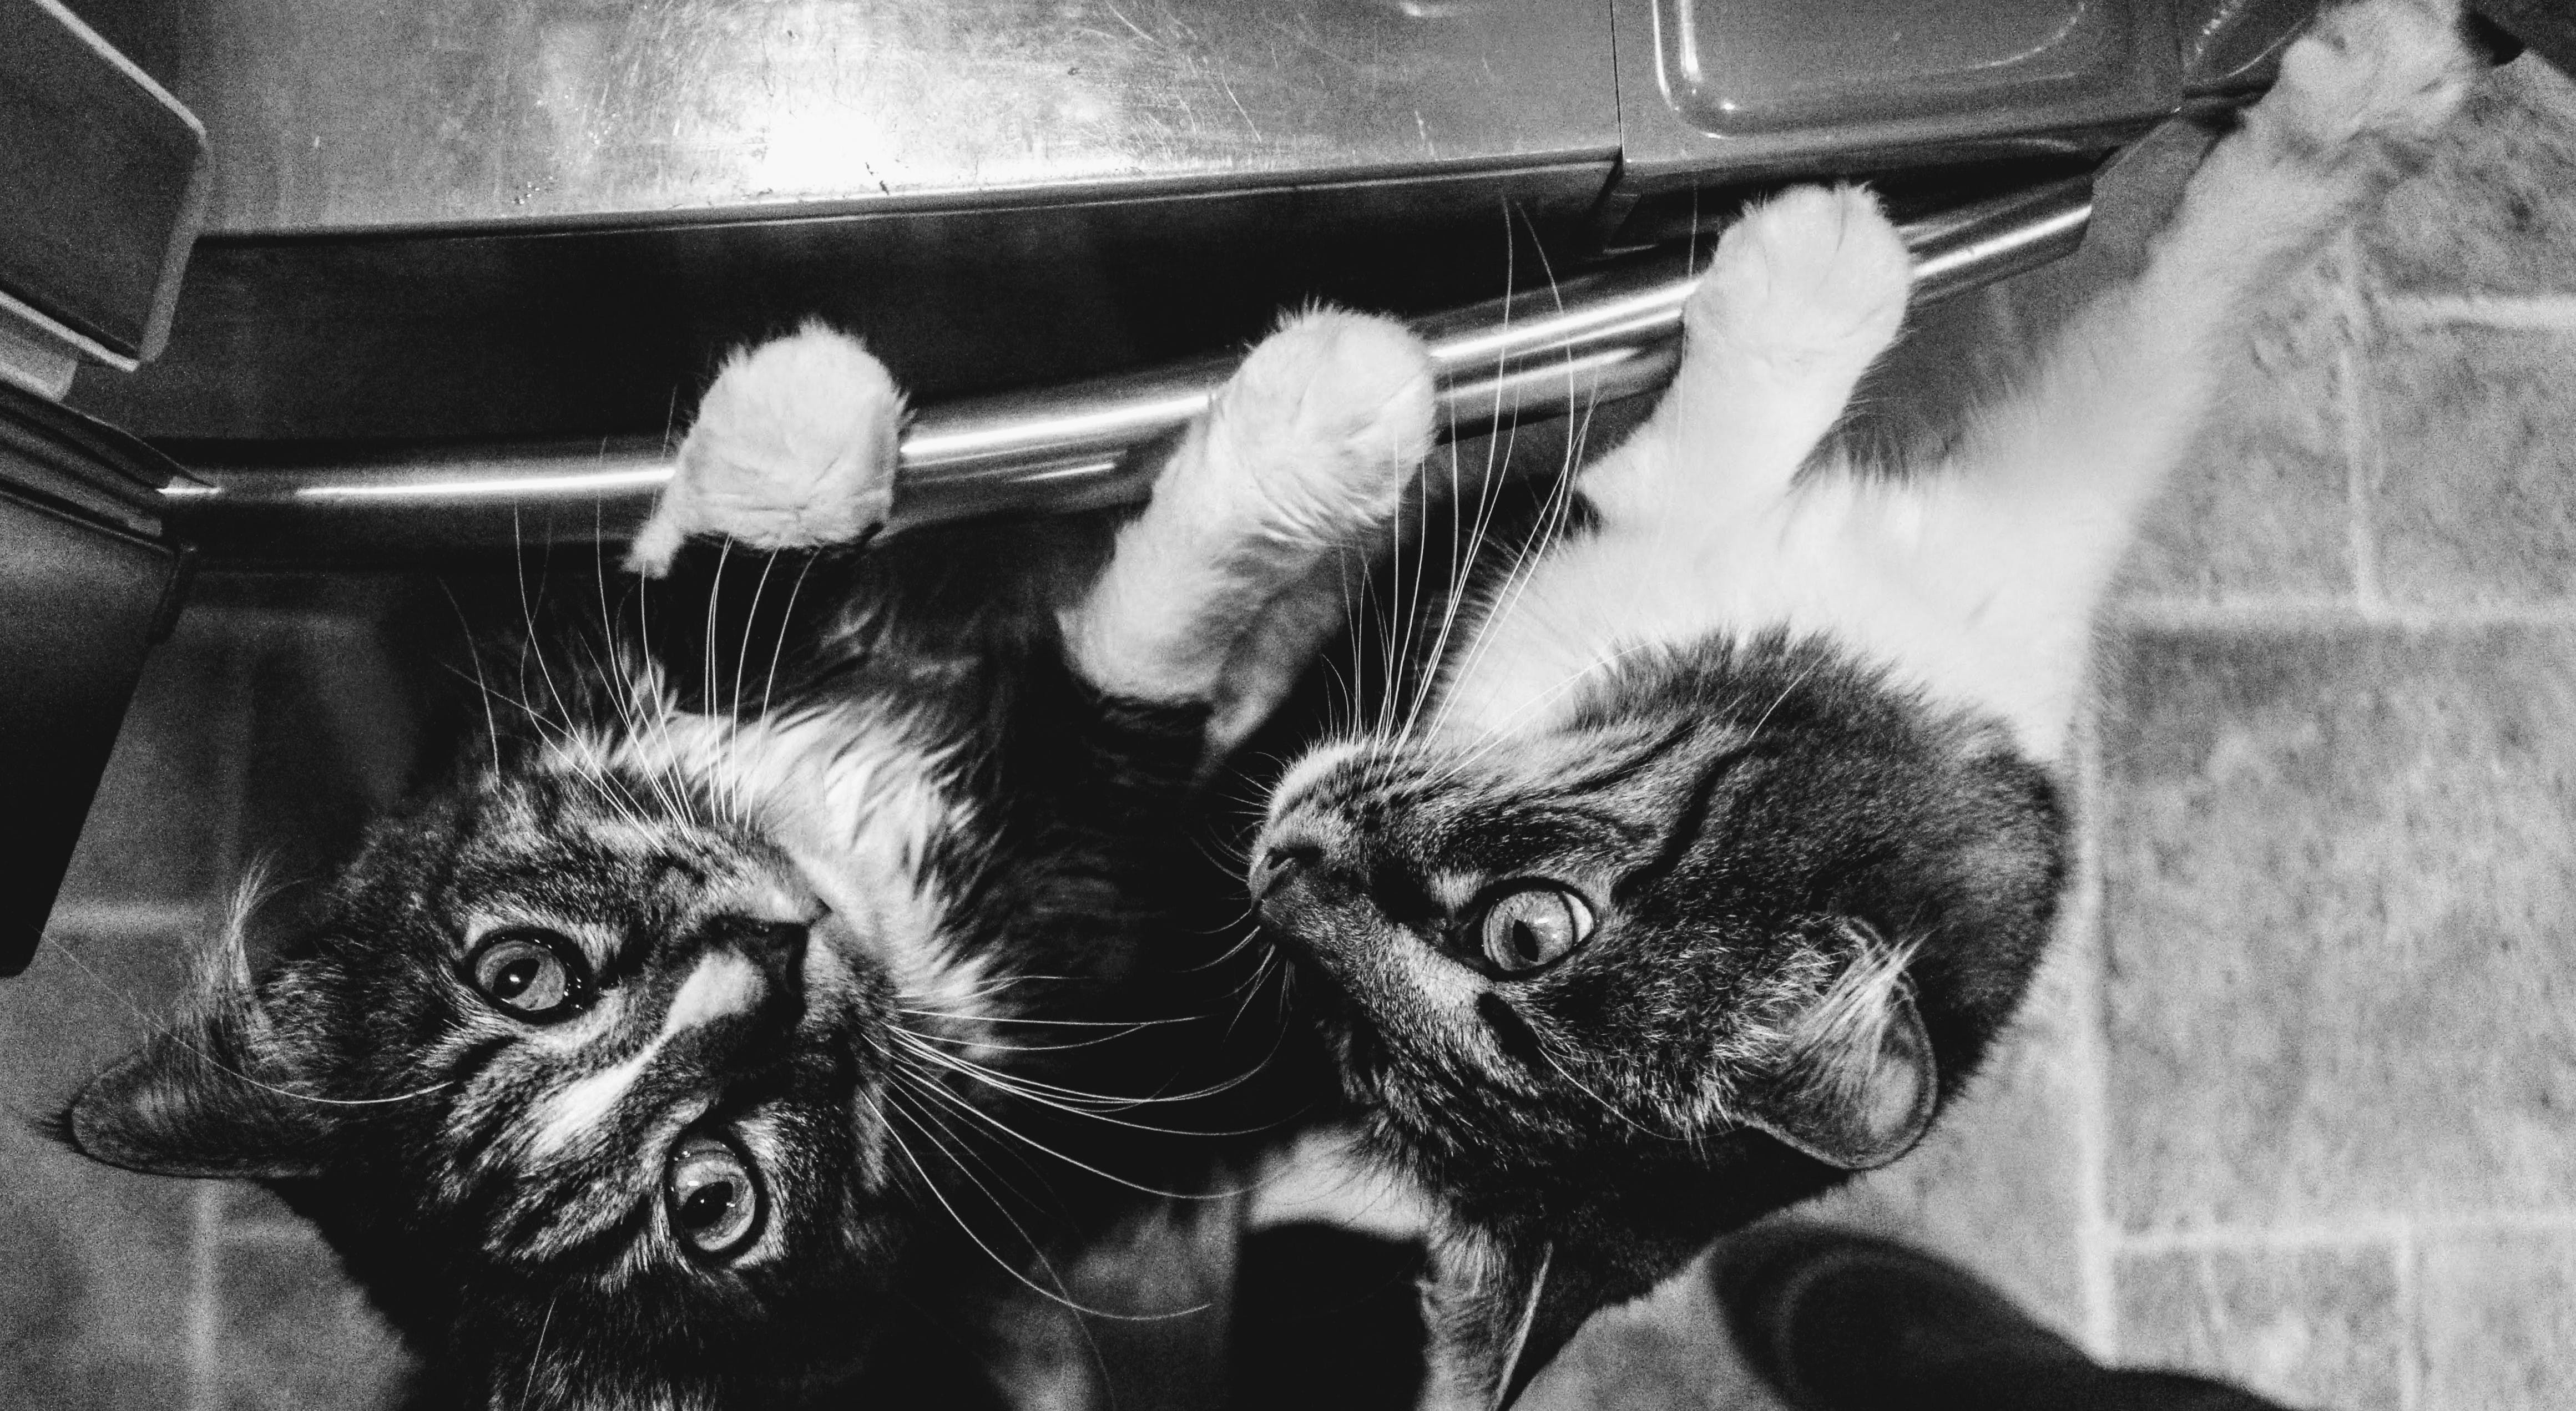 Grayscale Photo of Tabby Cats